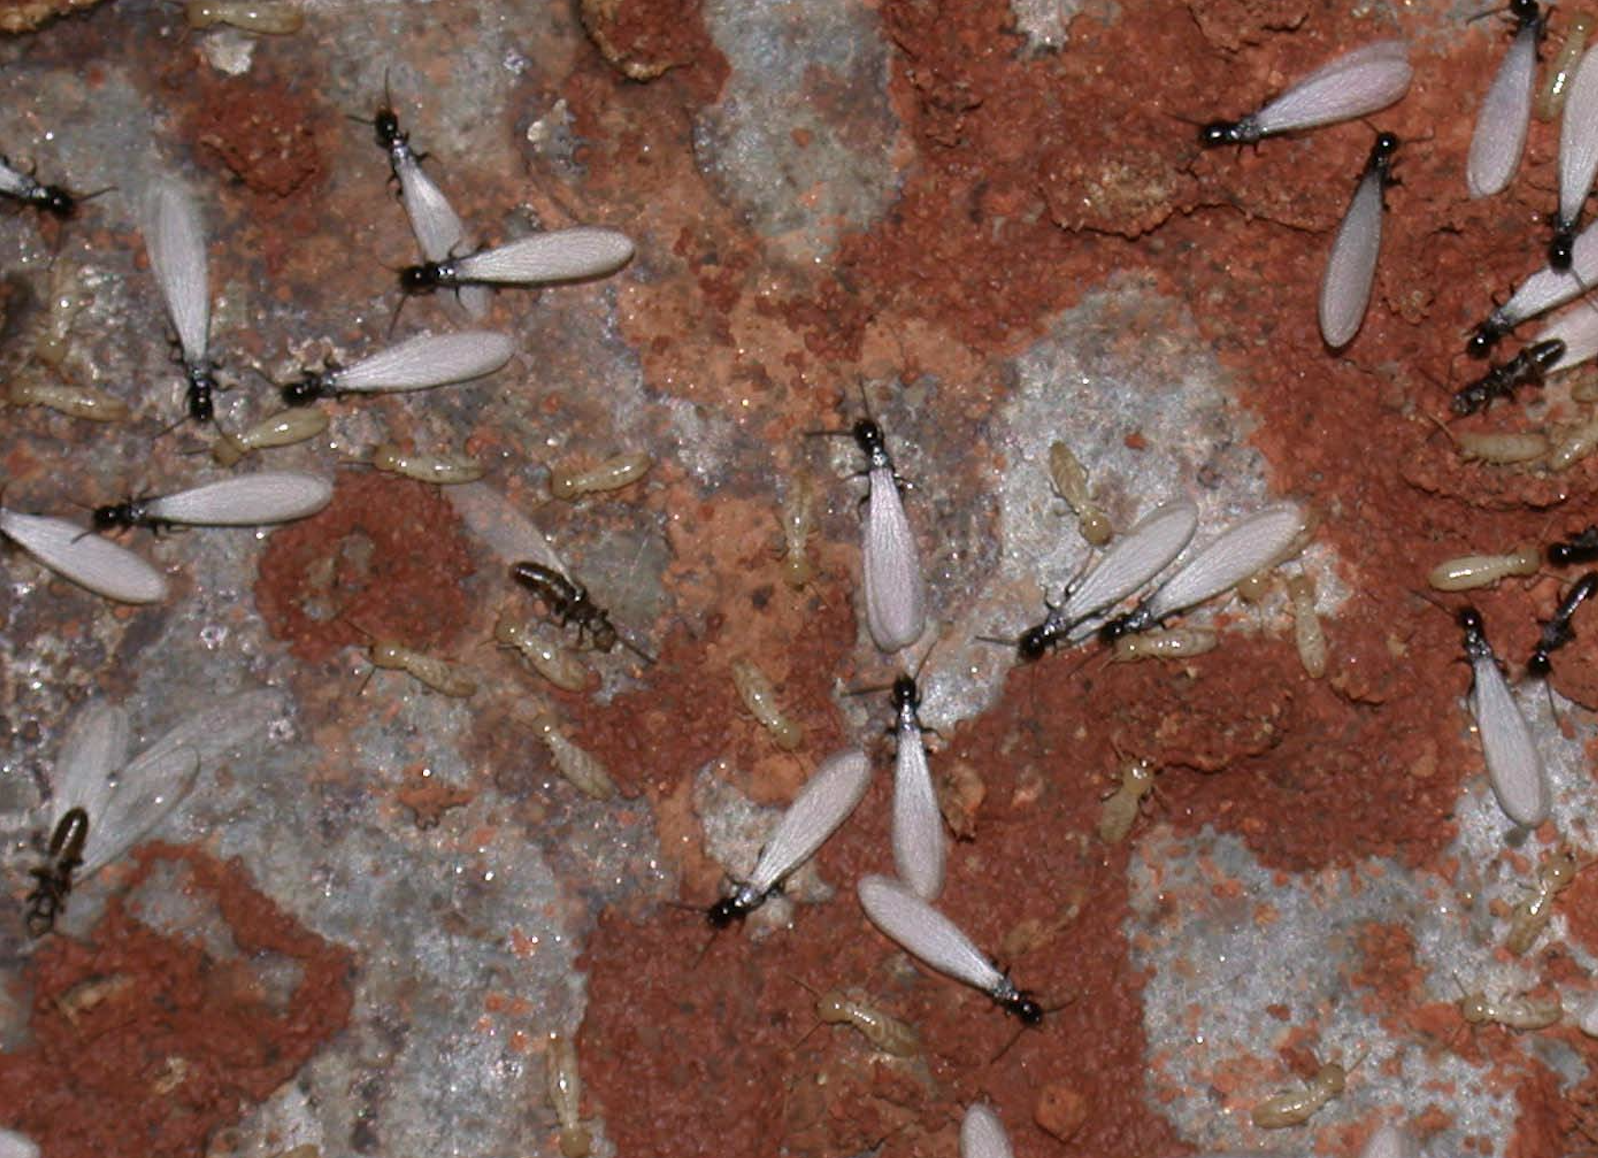 Subterranean termite swarmers are most commonly seen in spring and are a telltale sign of termite infestation. (Photo by Brian Forschler)